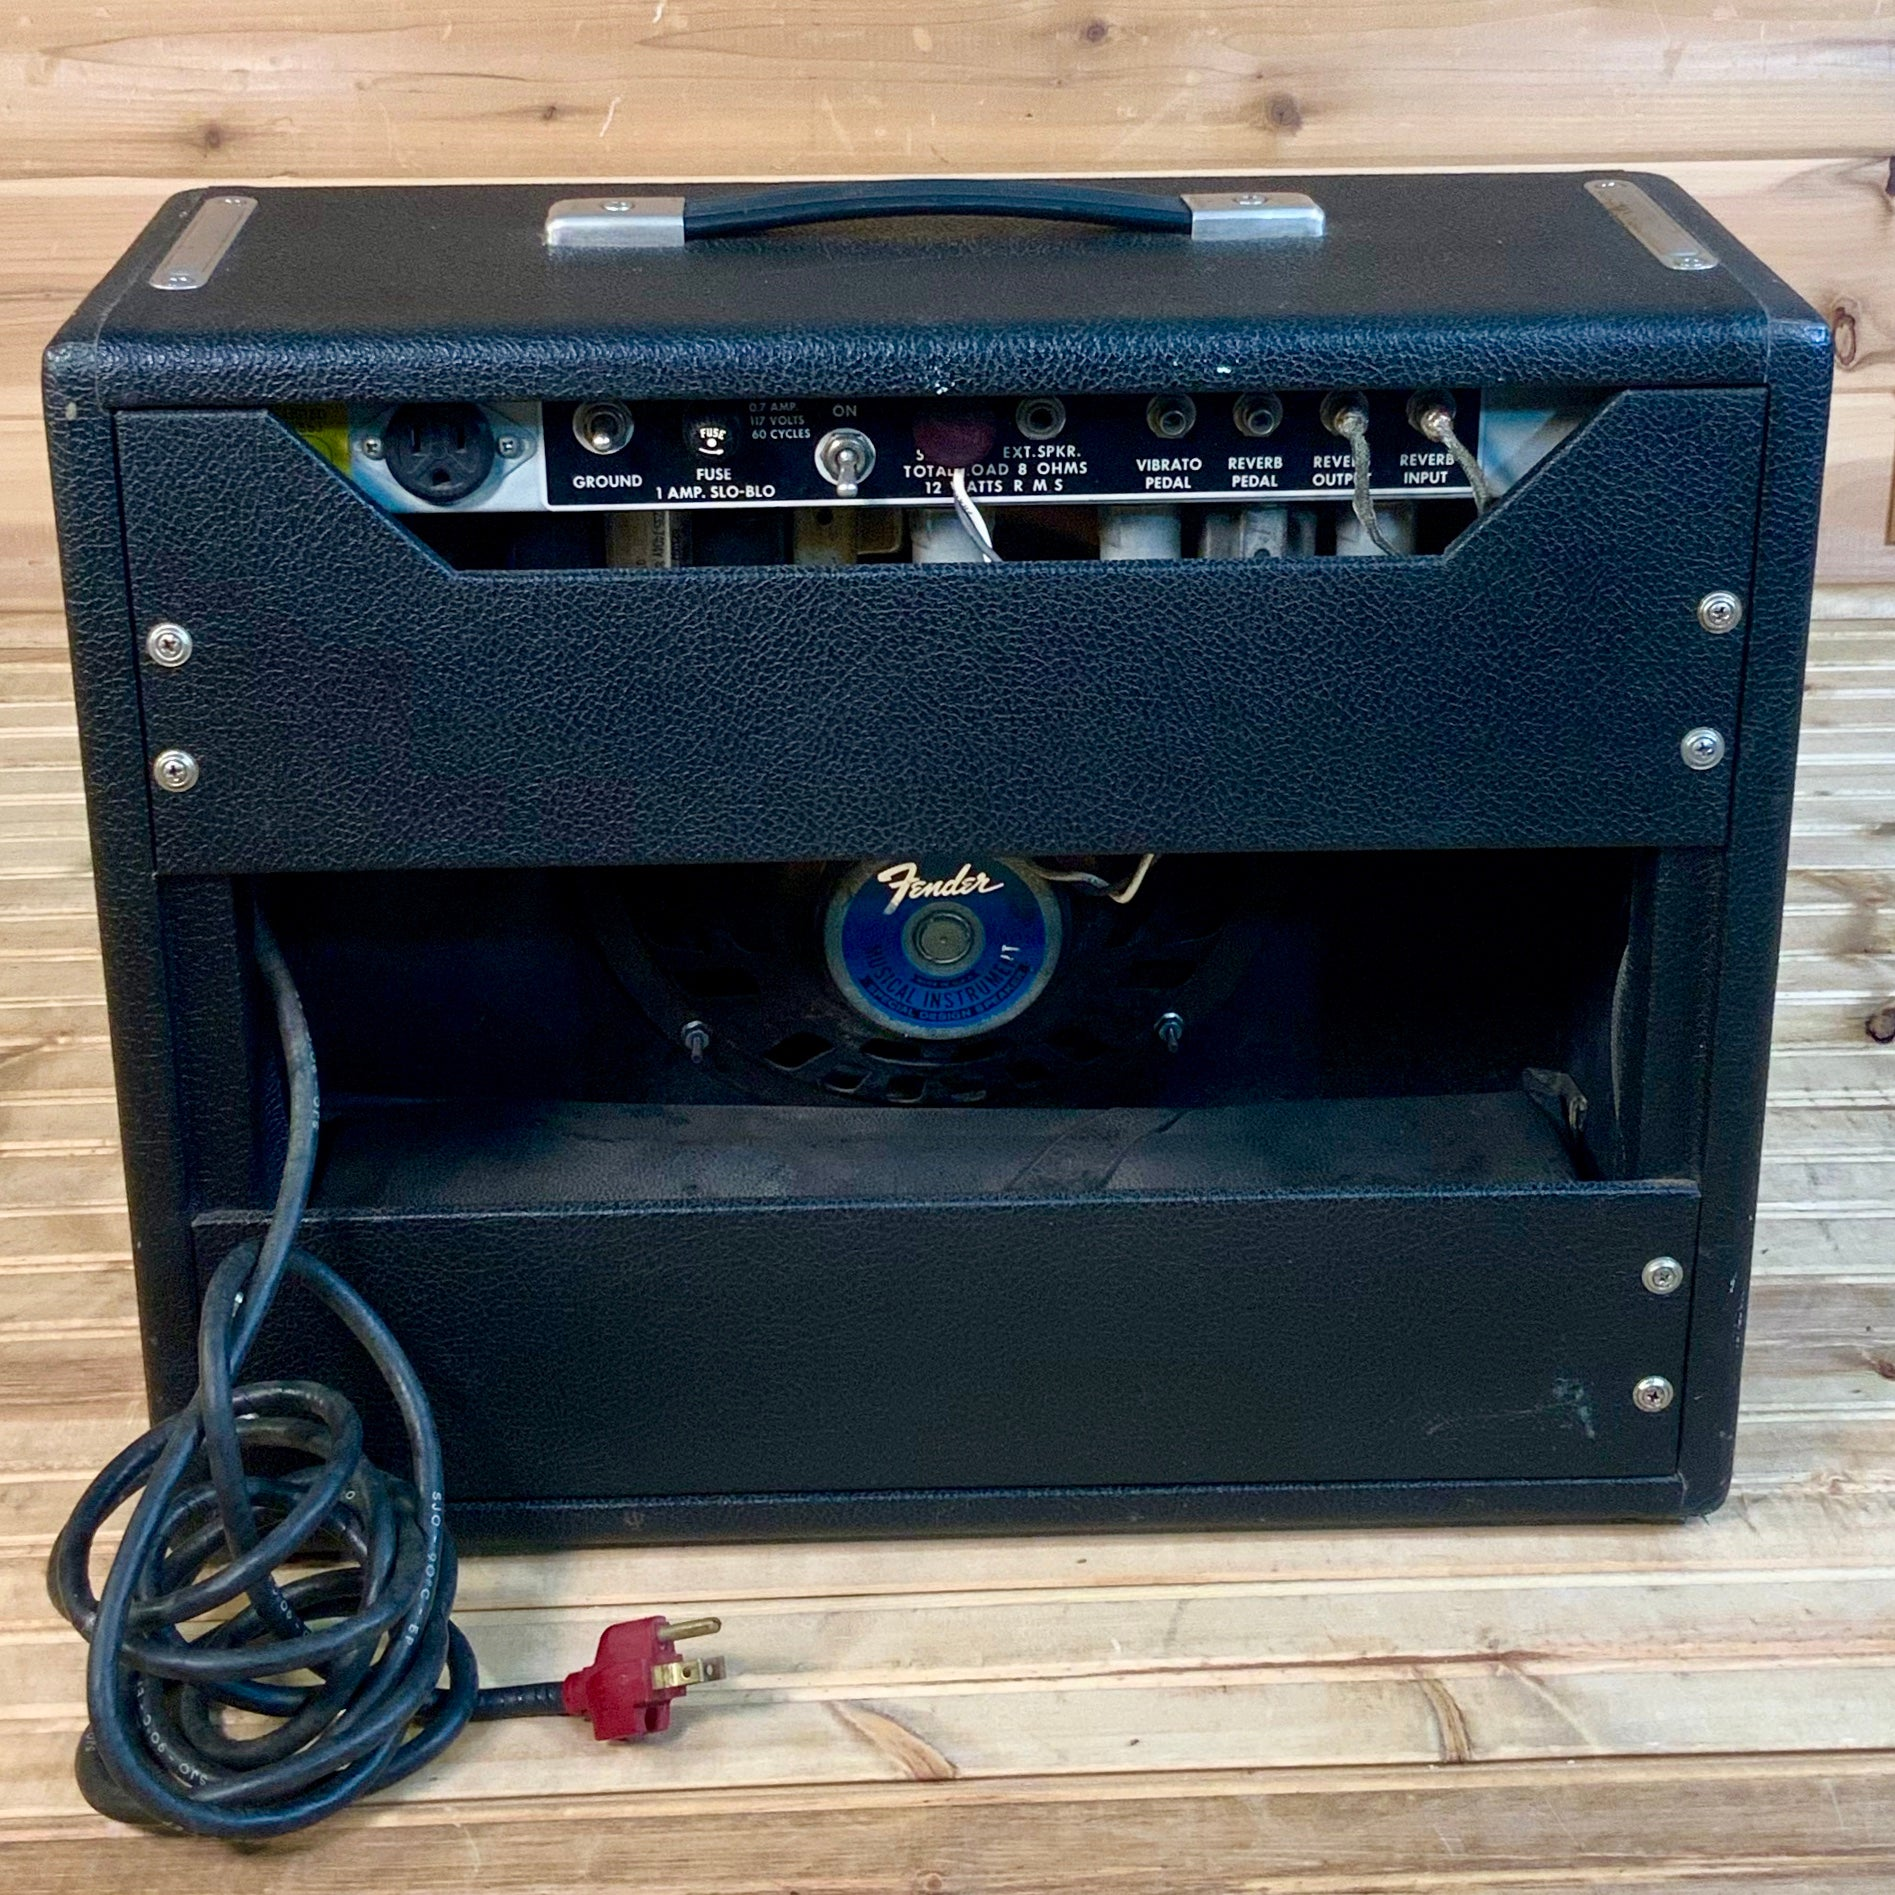 Guitar Amplifiers tagged